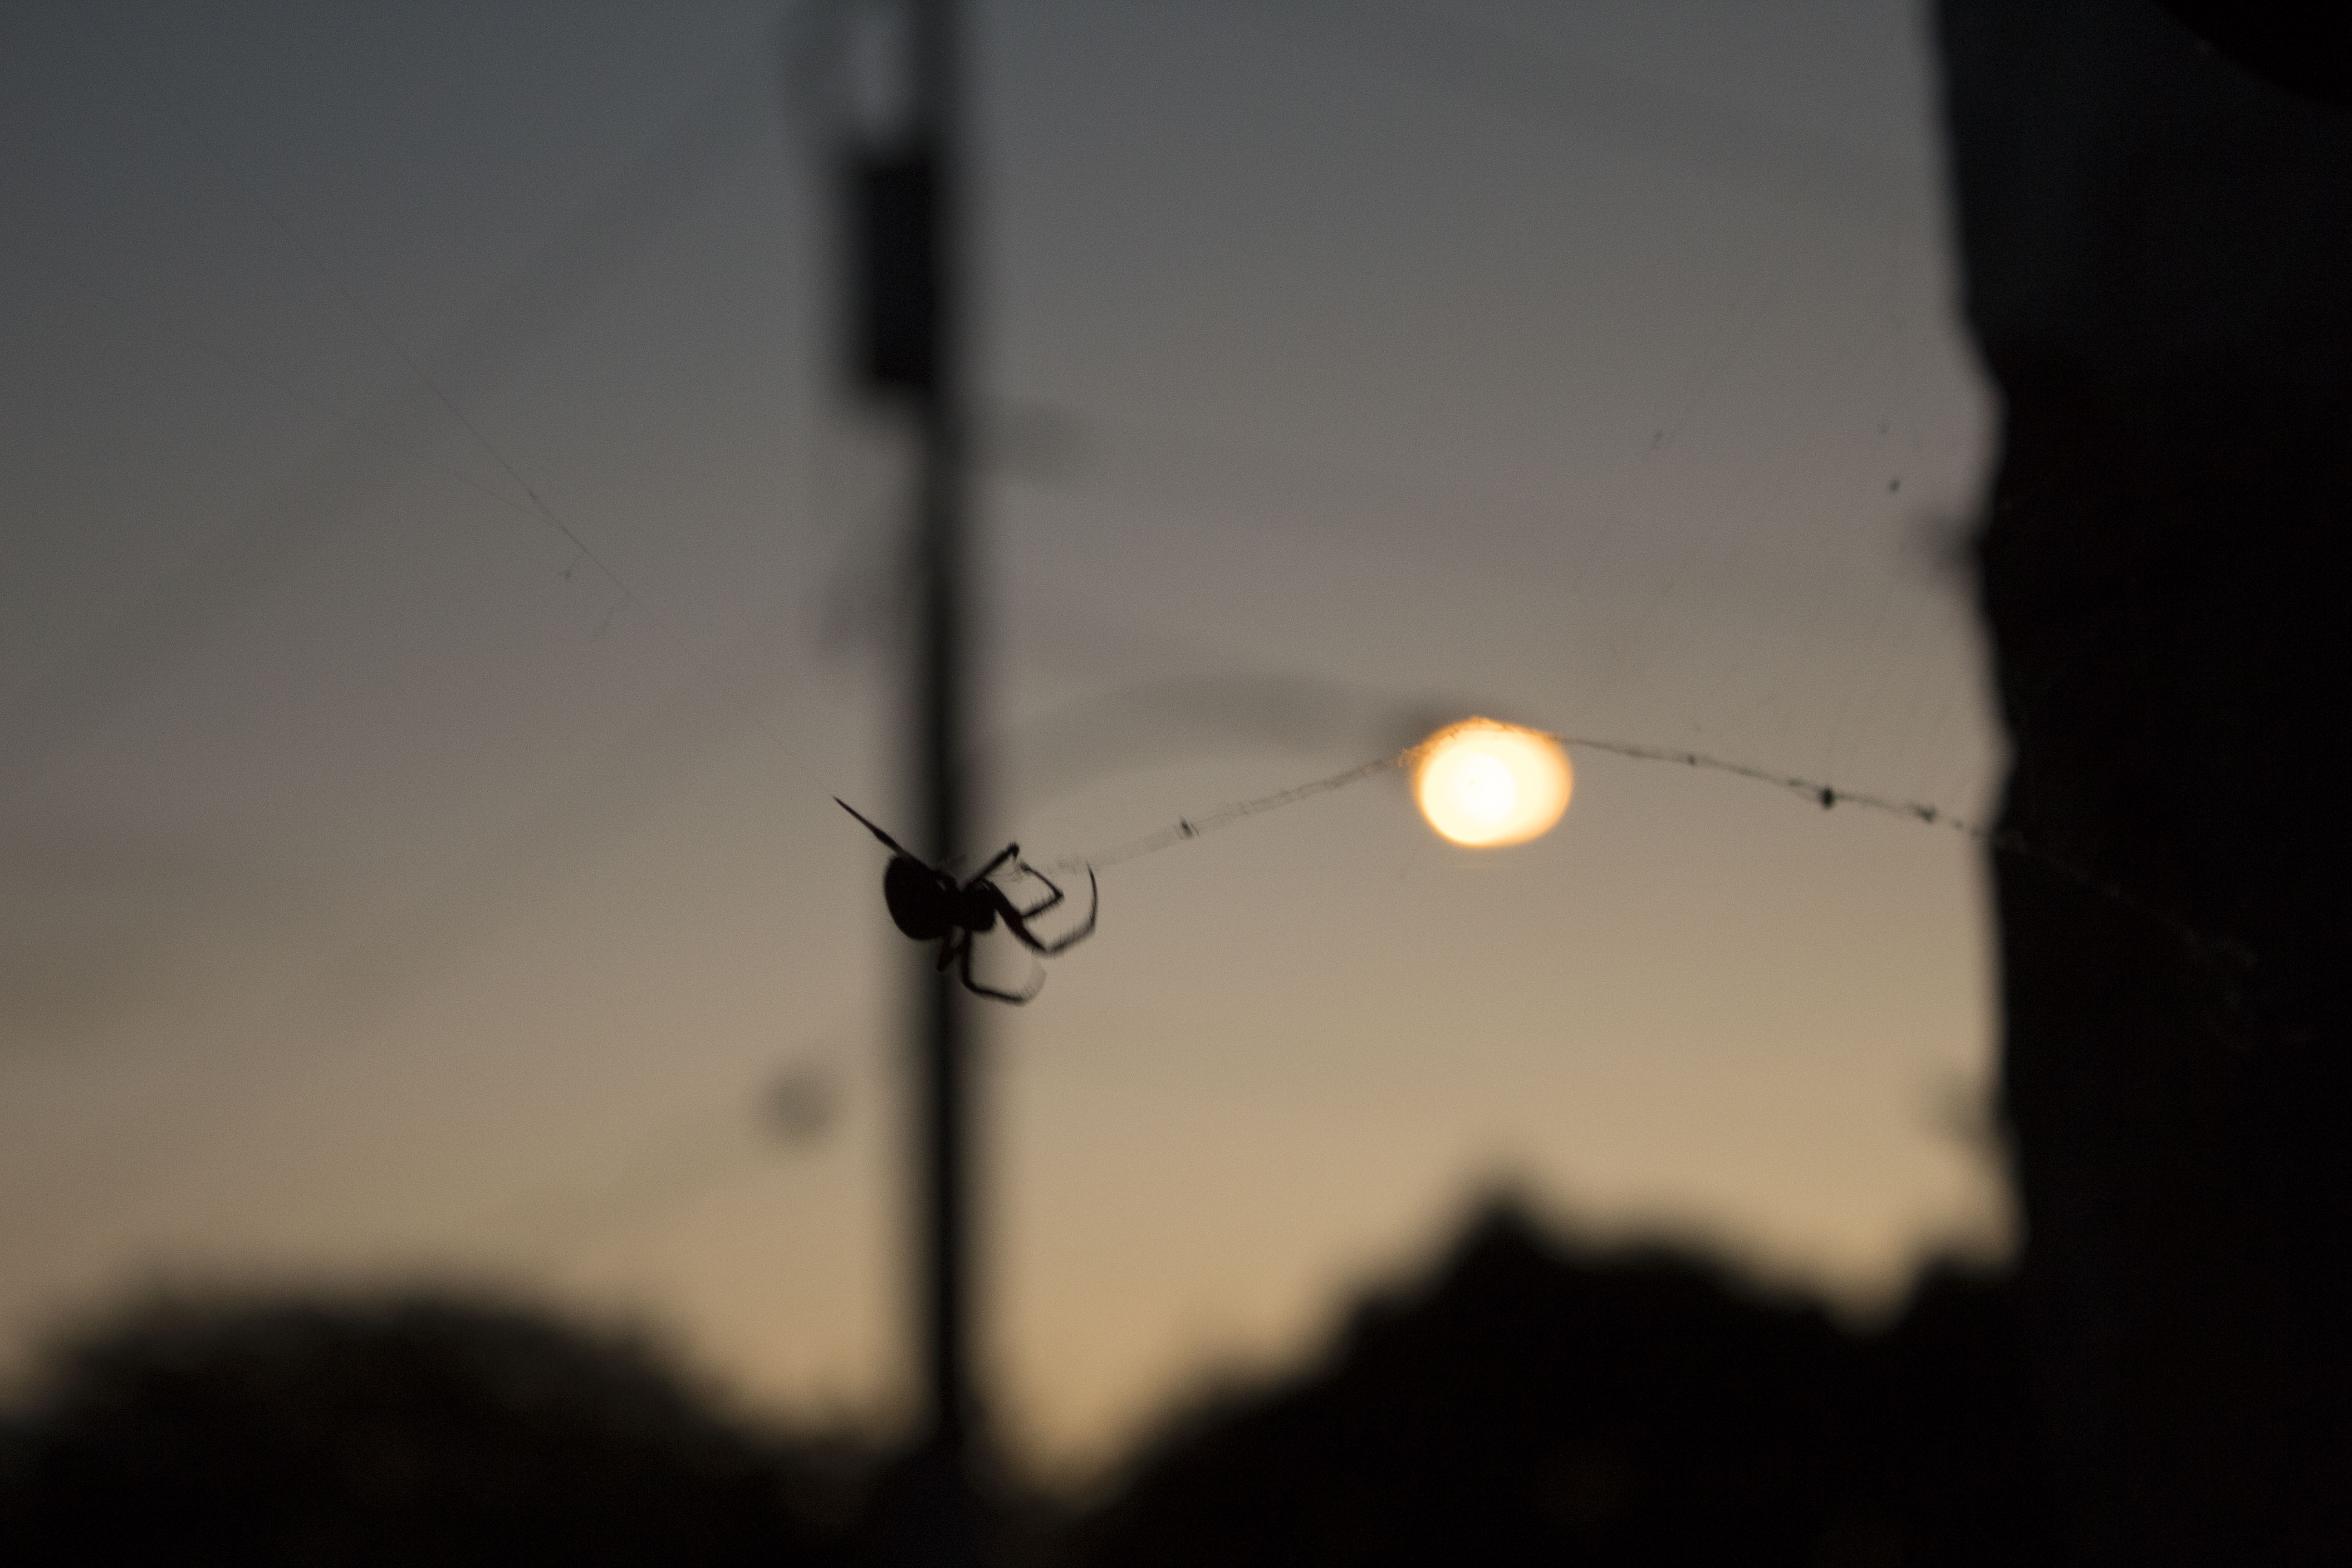 silhouette of spider, streetlamp in background